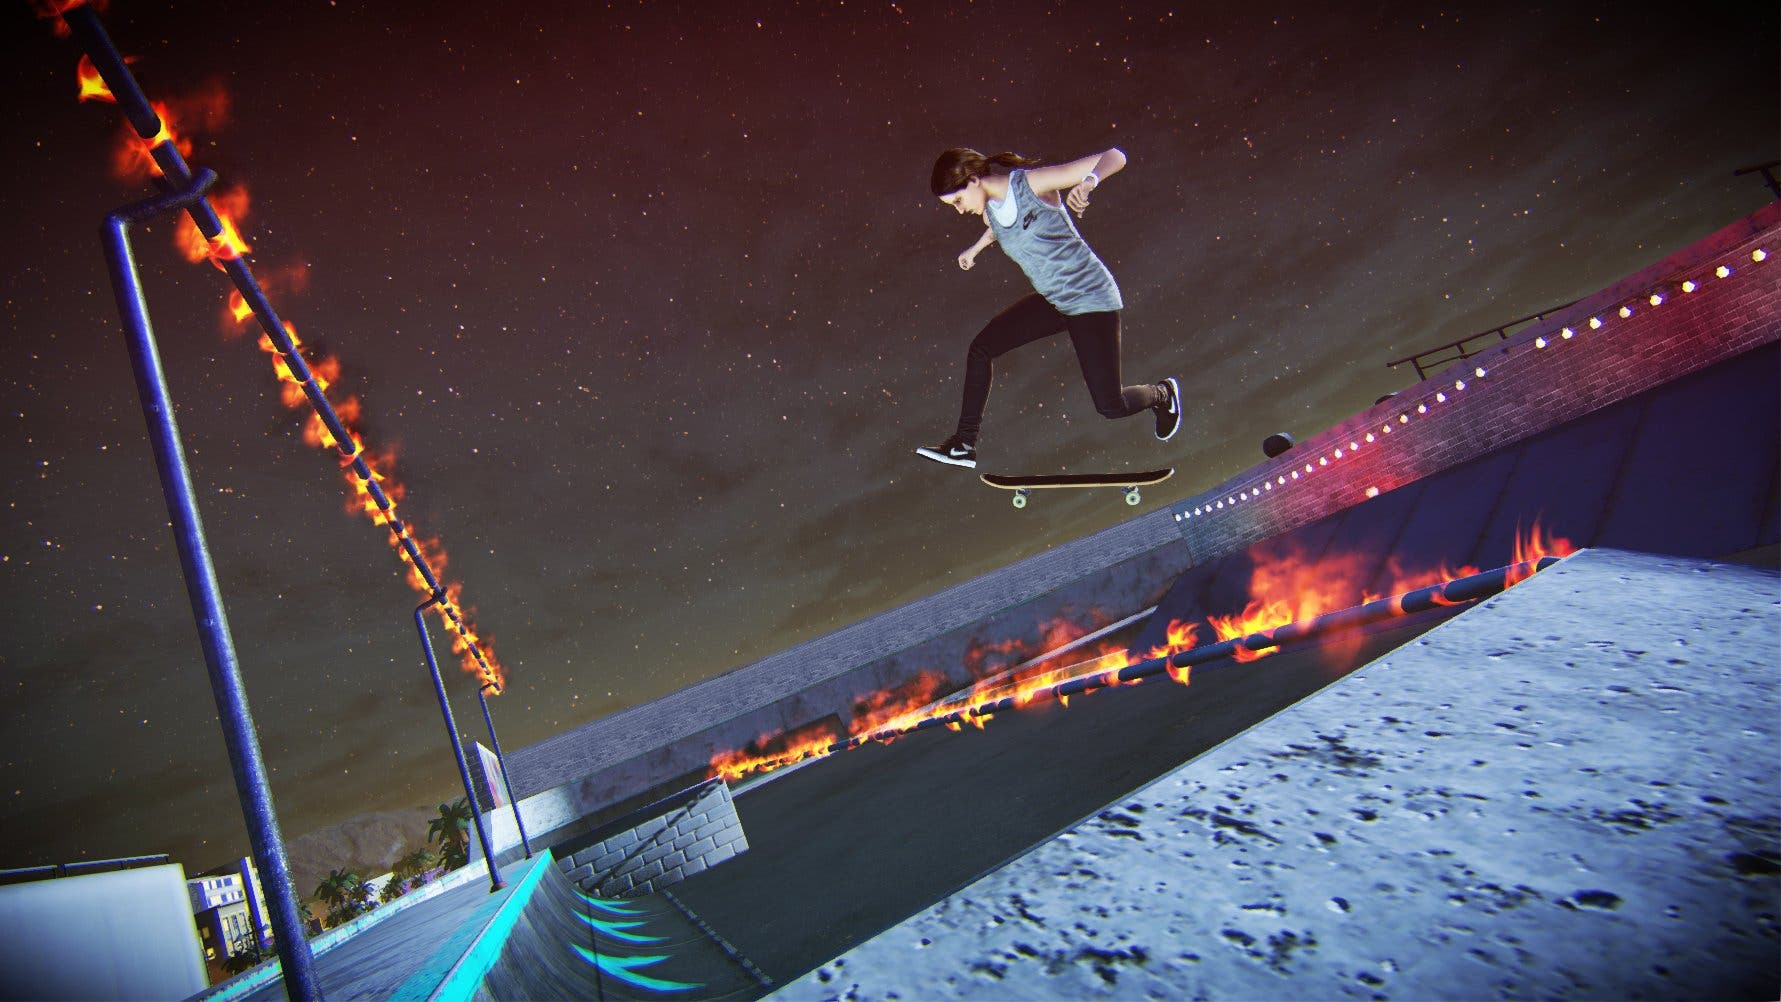 Nuevo gameplay trailer de Tony Hawk's Pro Skater 5 1